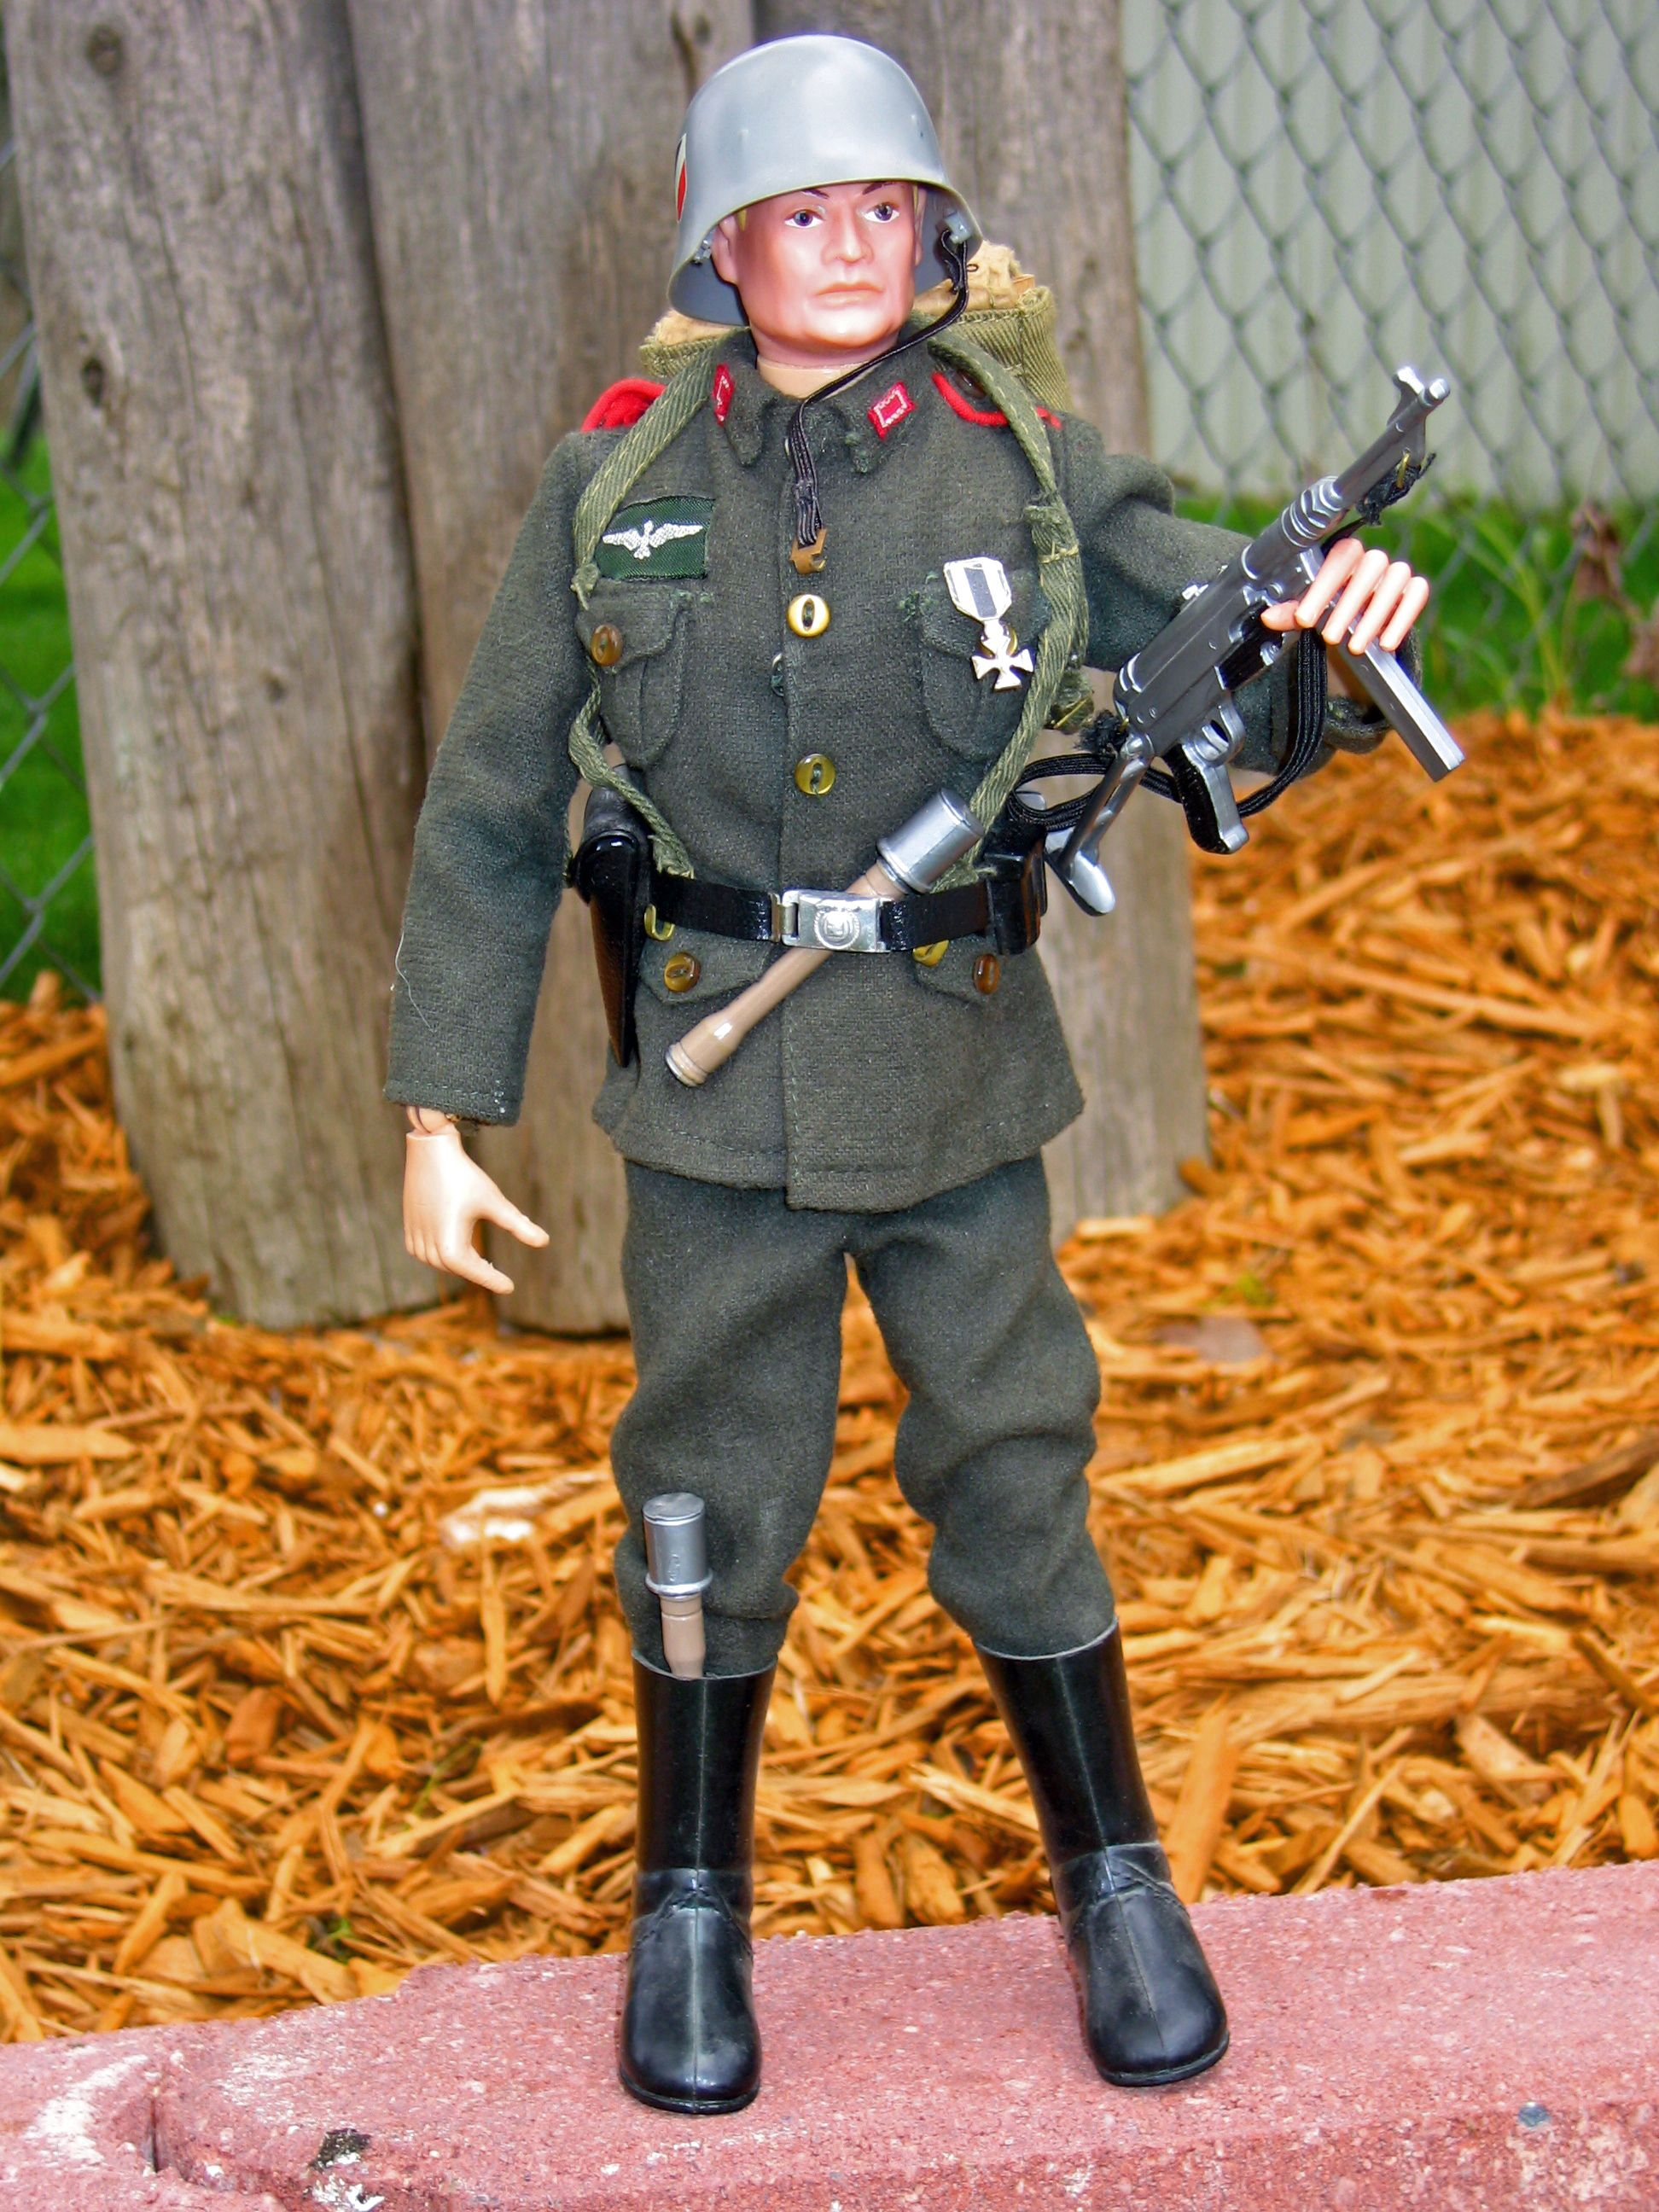 GI Joe Equipment For 12in Joe 1960/'s Canteen Made in Hong Kong